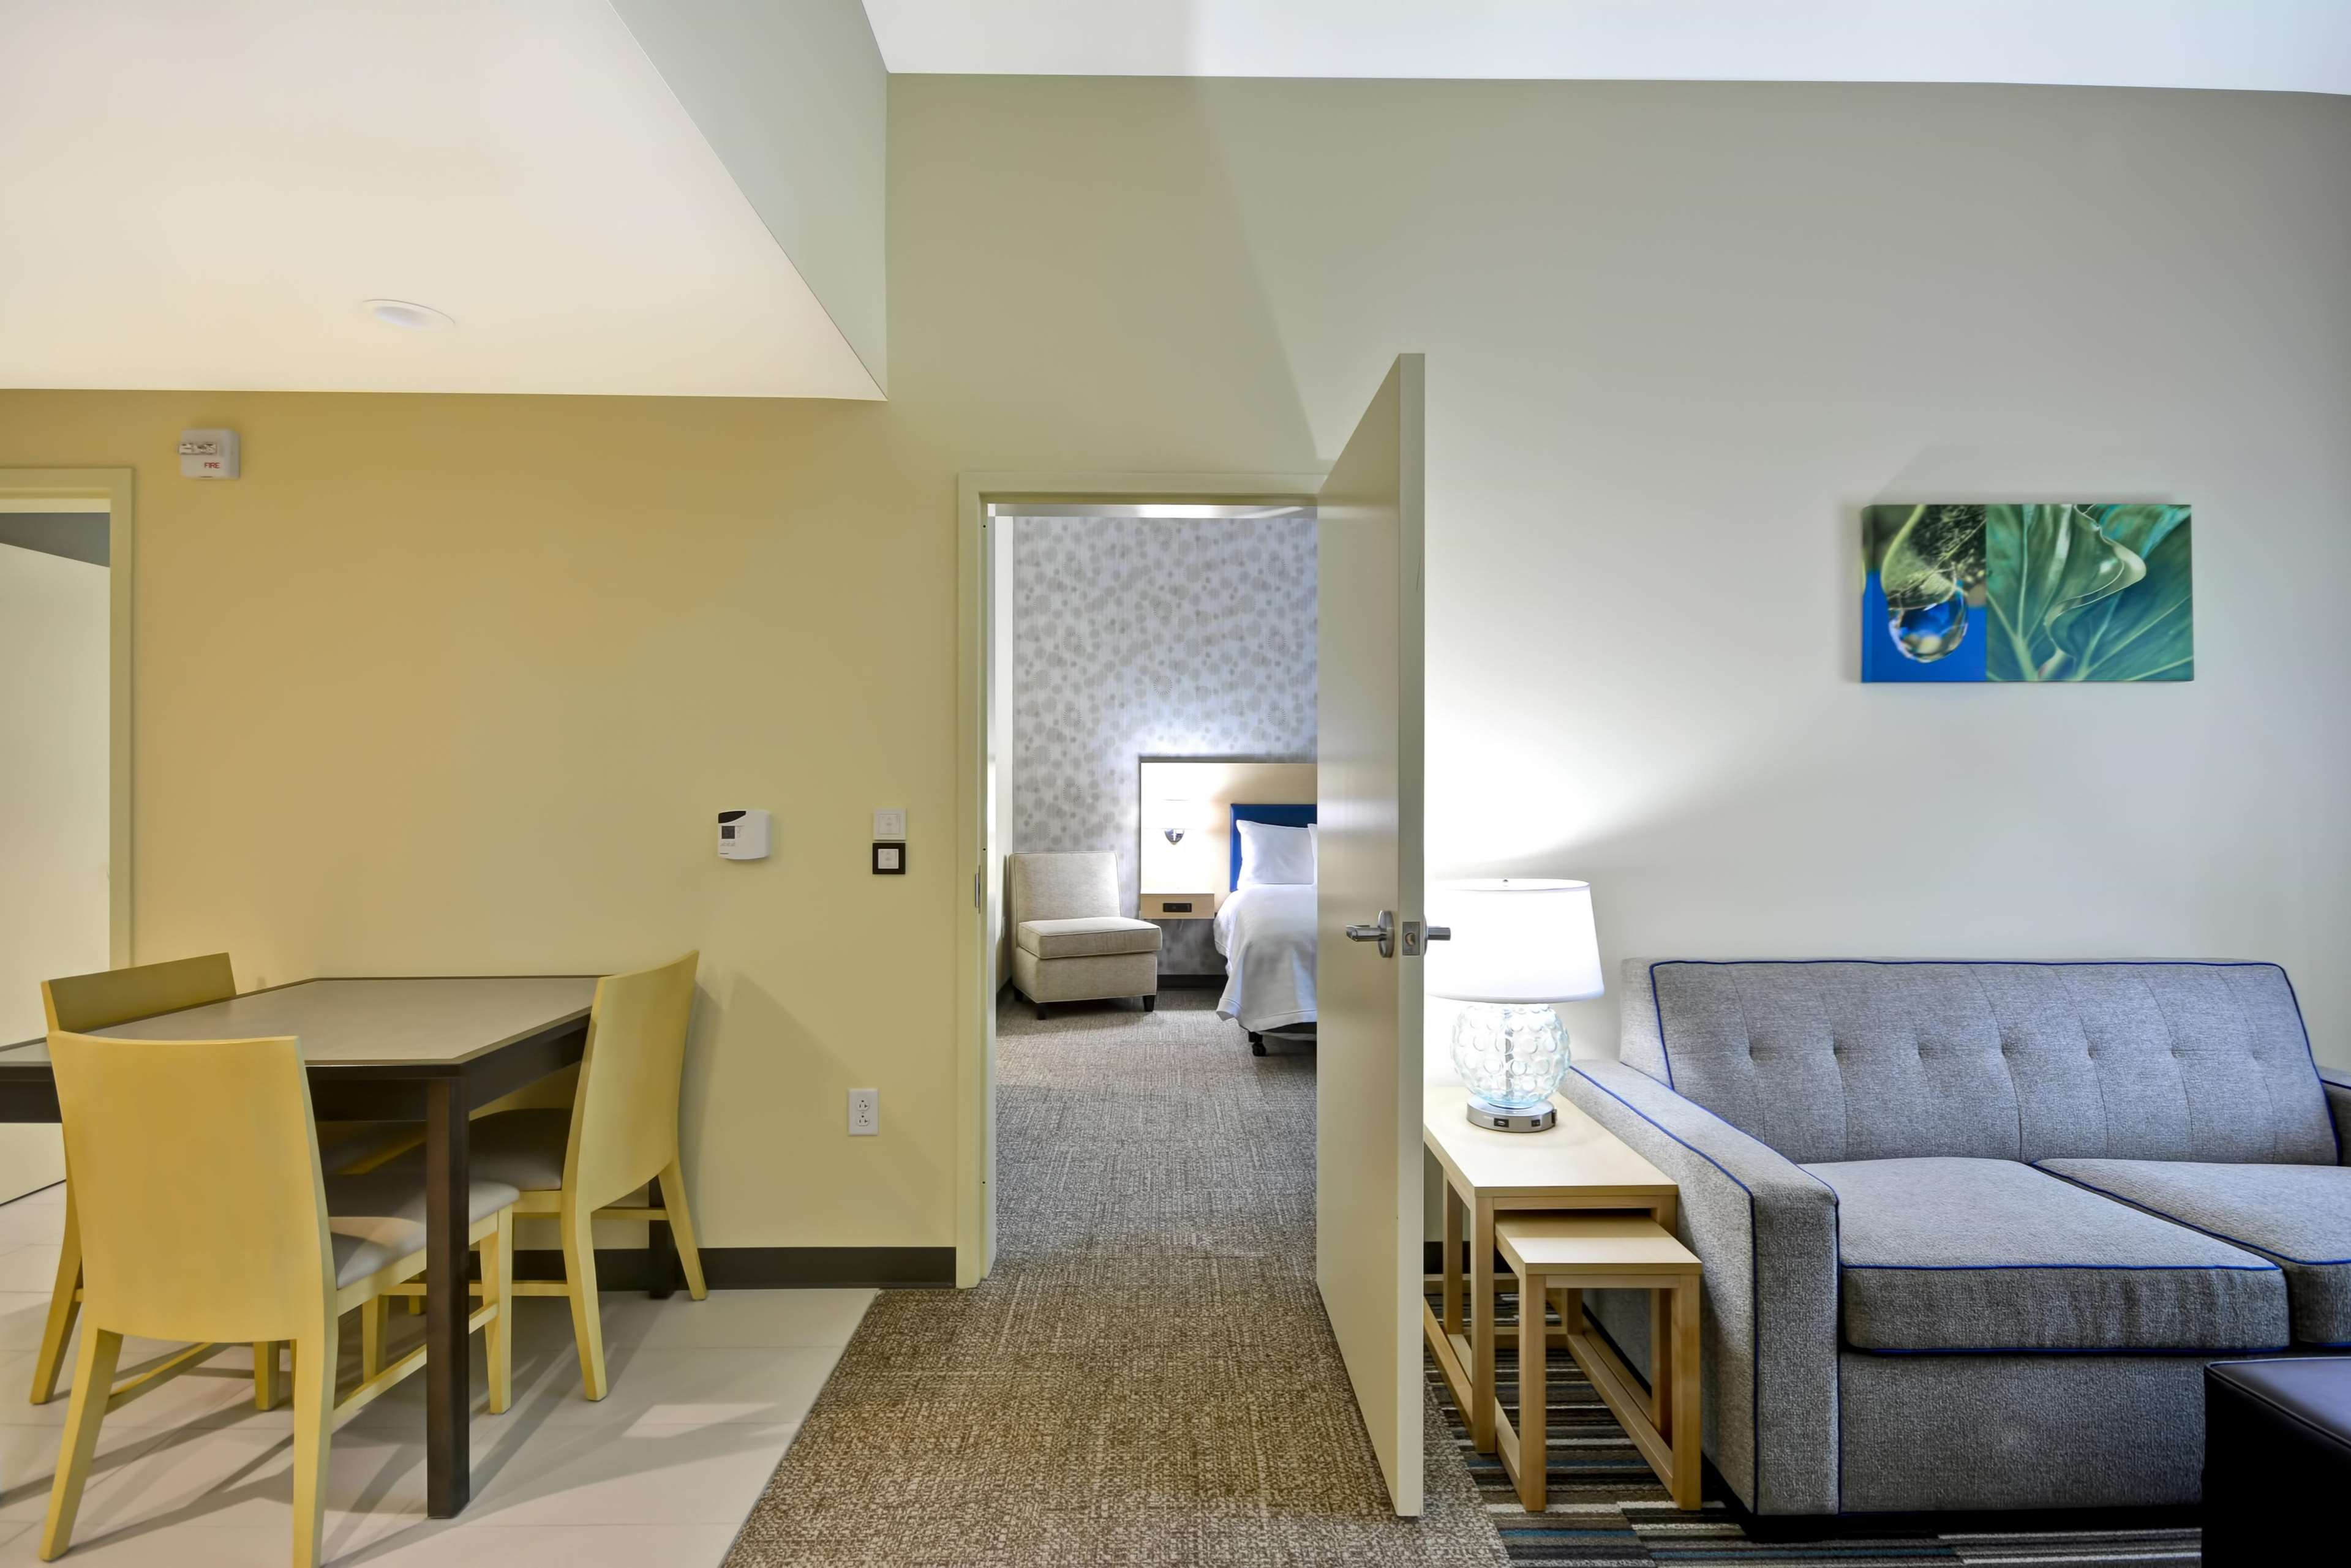 Home2 Suites By Hilton Maumee Toledo image 12